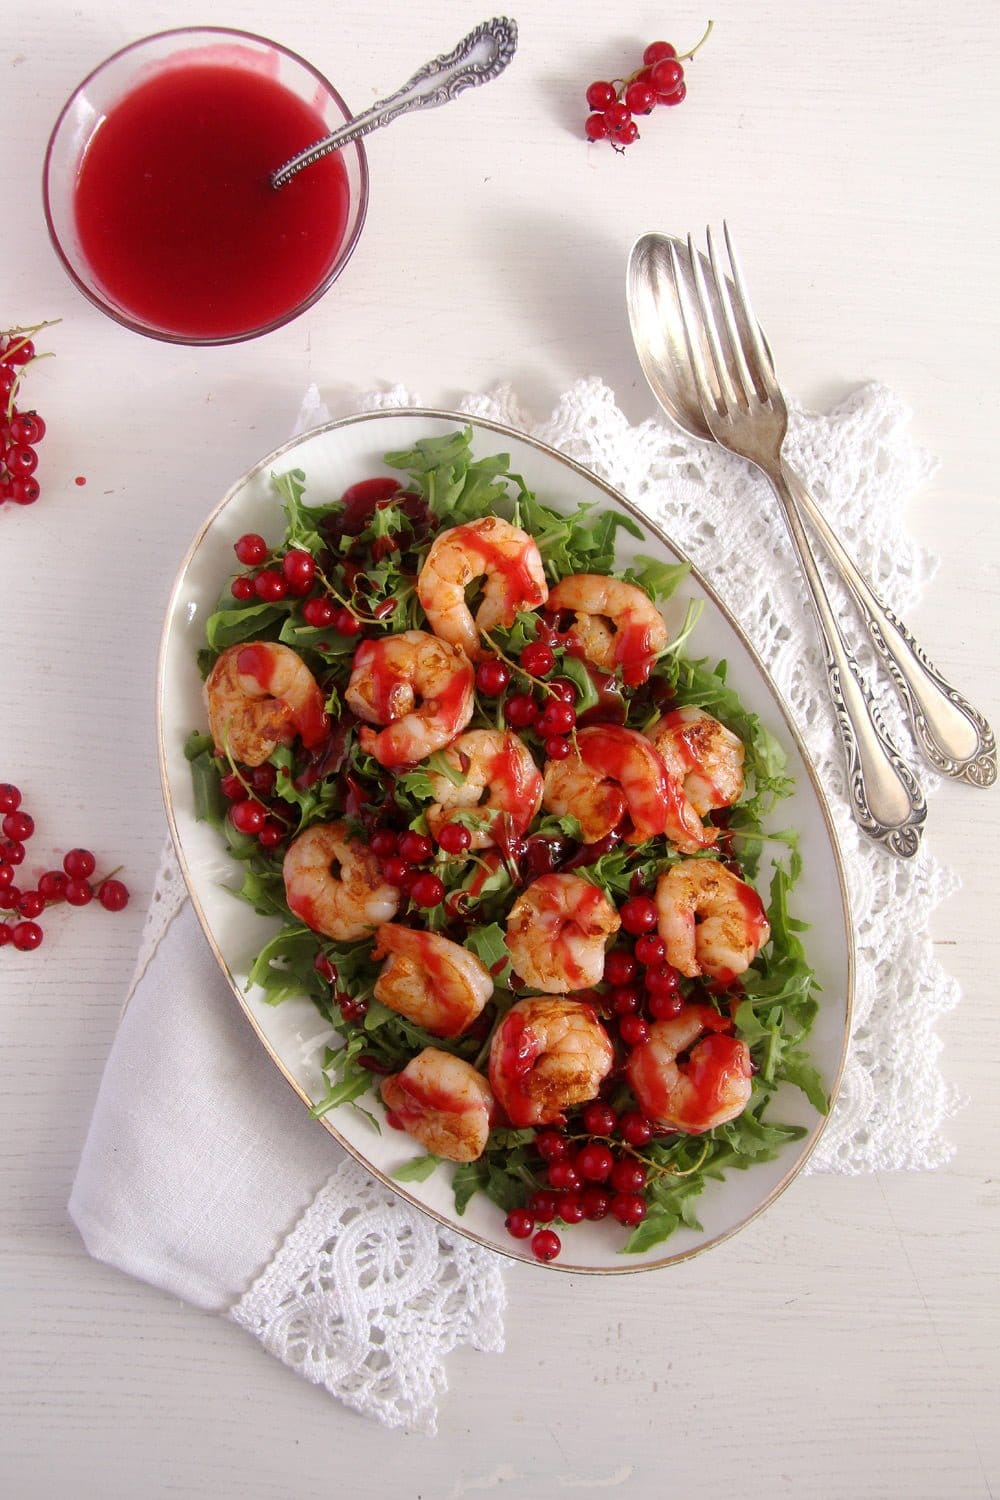 red currant salad Tiger Prawns with Red Currant Sauce